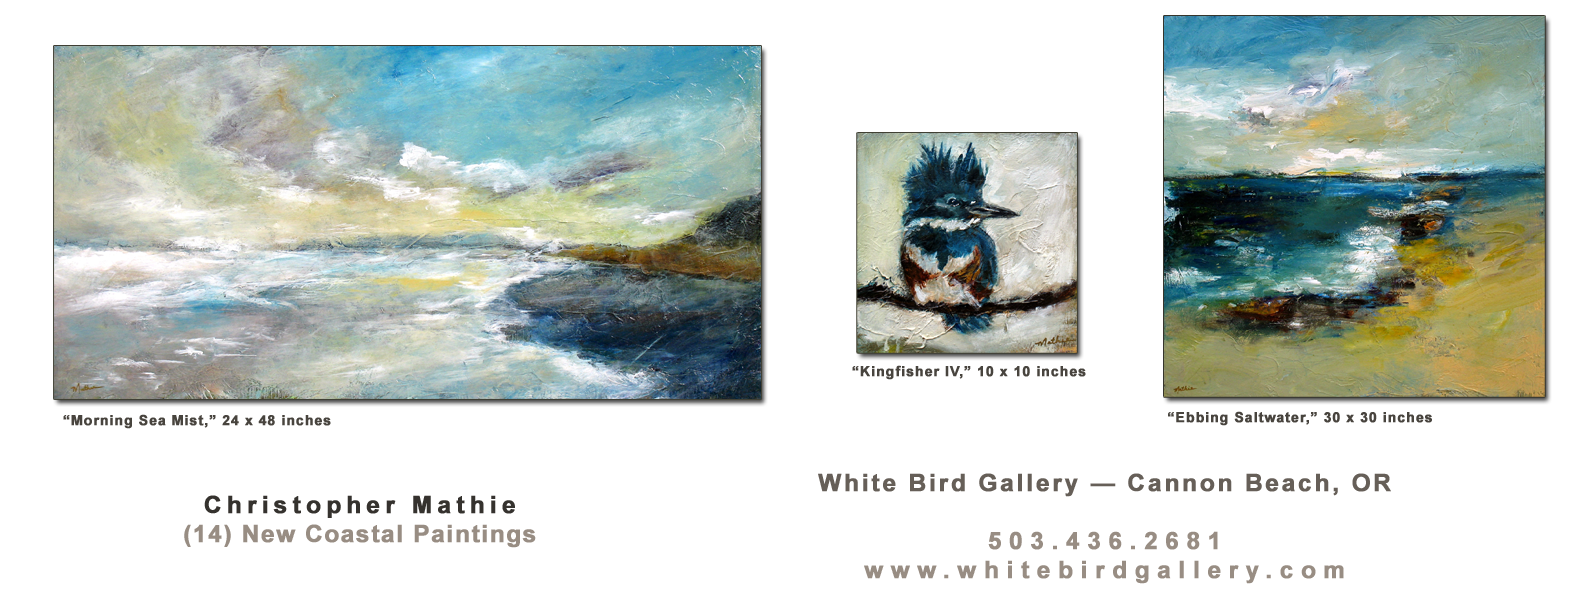 Mathie_White_Bird_Gallery_01-2019_1.png